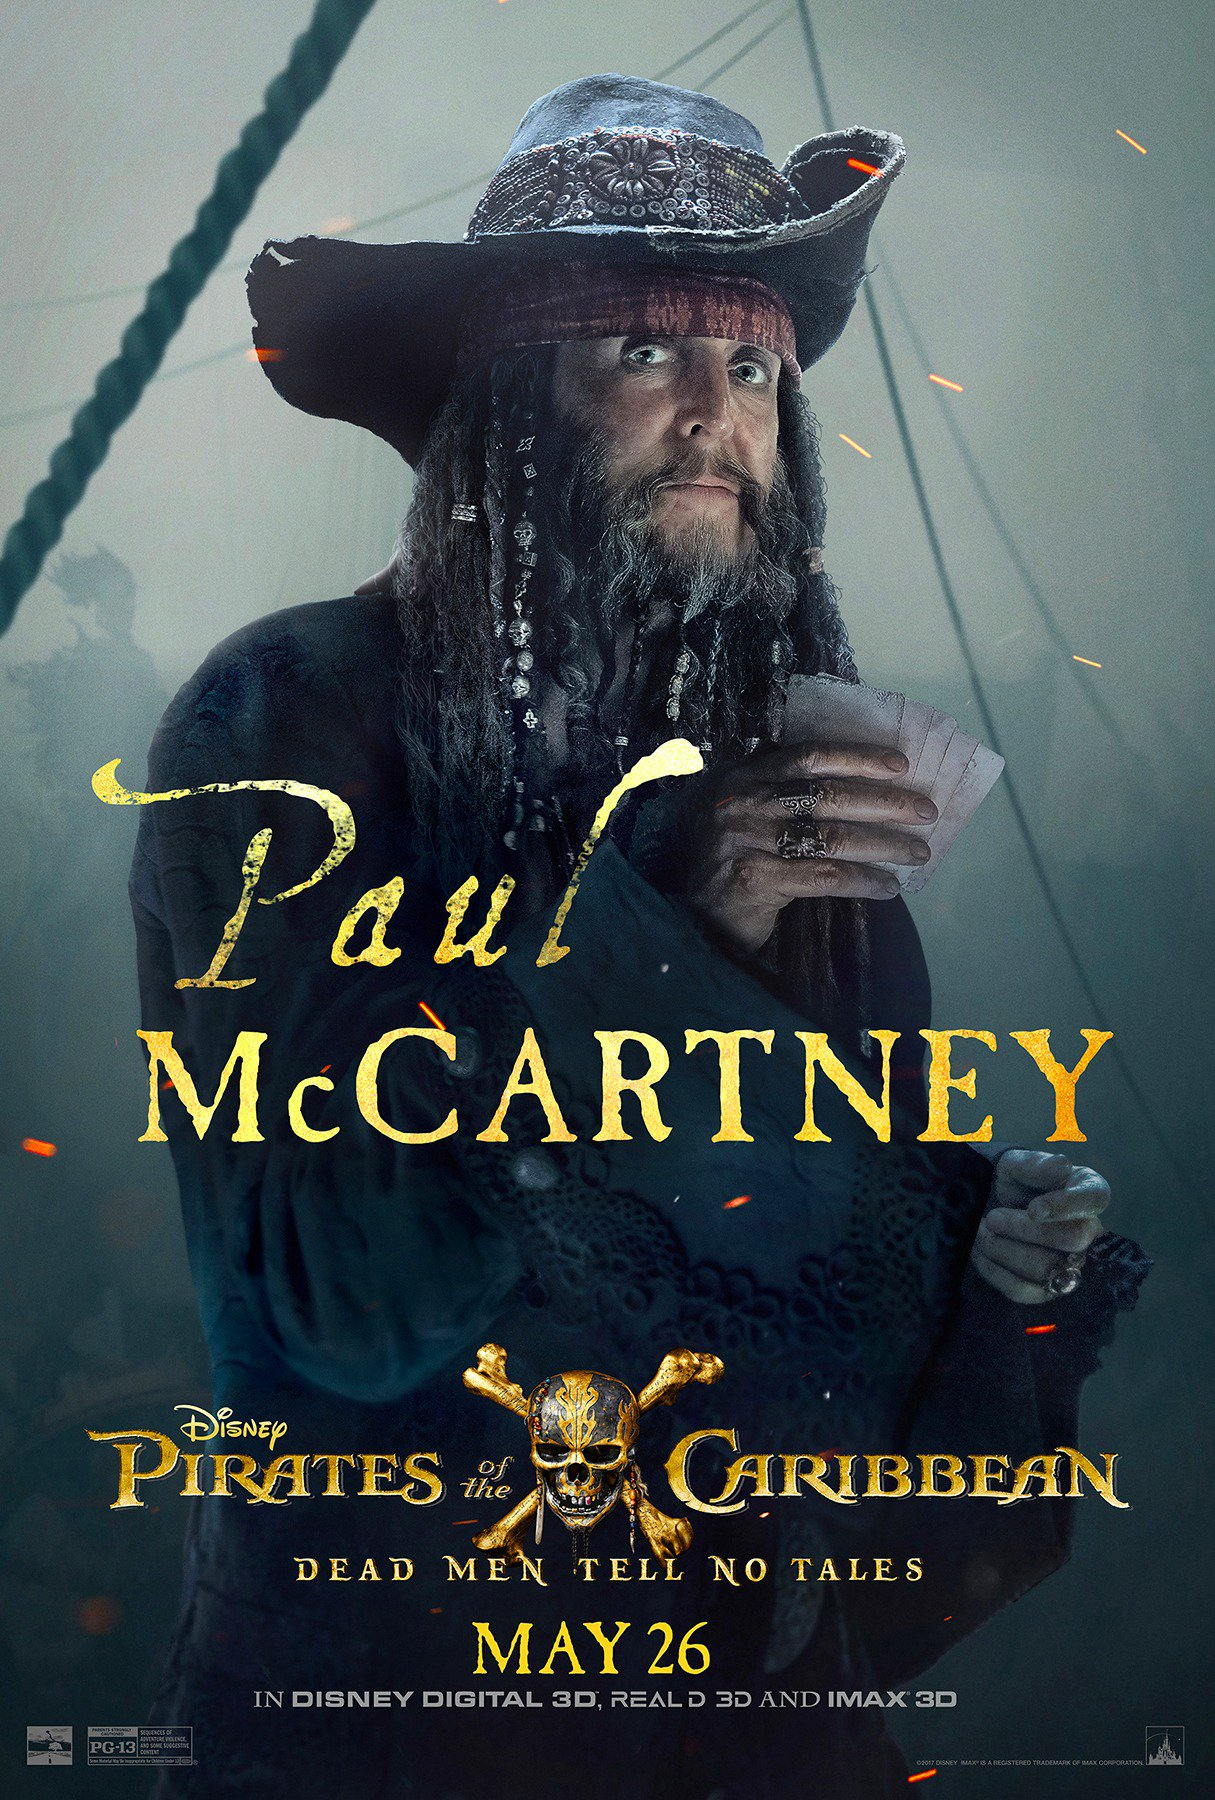 Paul McCartney Reveals Pirates Of The Caribbean Character Rolling Stone